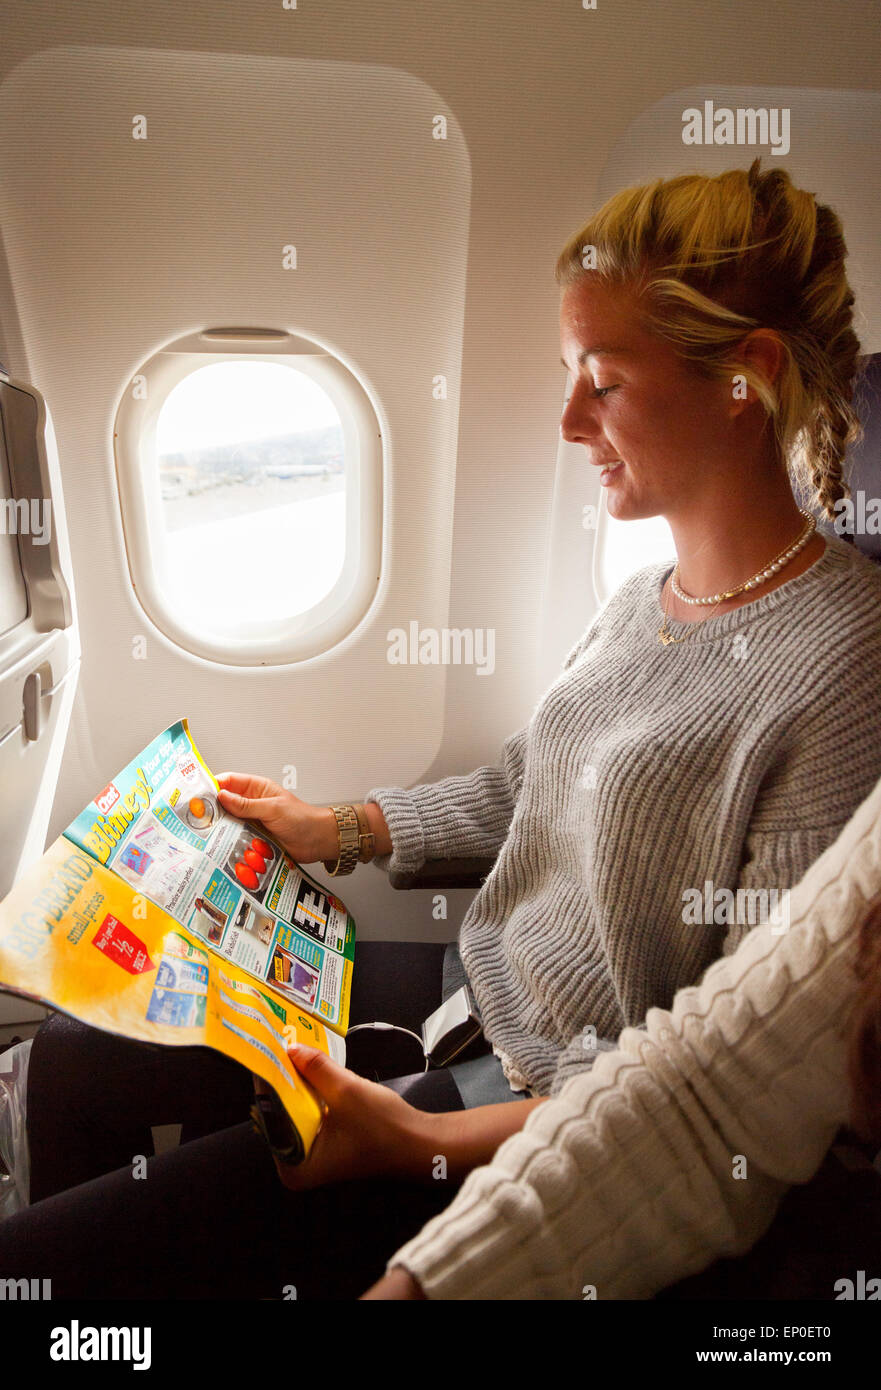 A Young Woman Sitting In Her Airplane Window Seat Reading